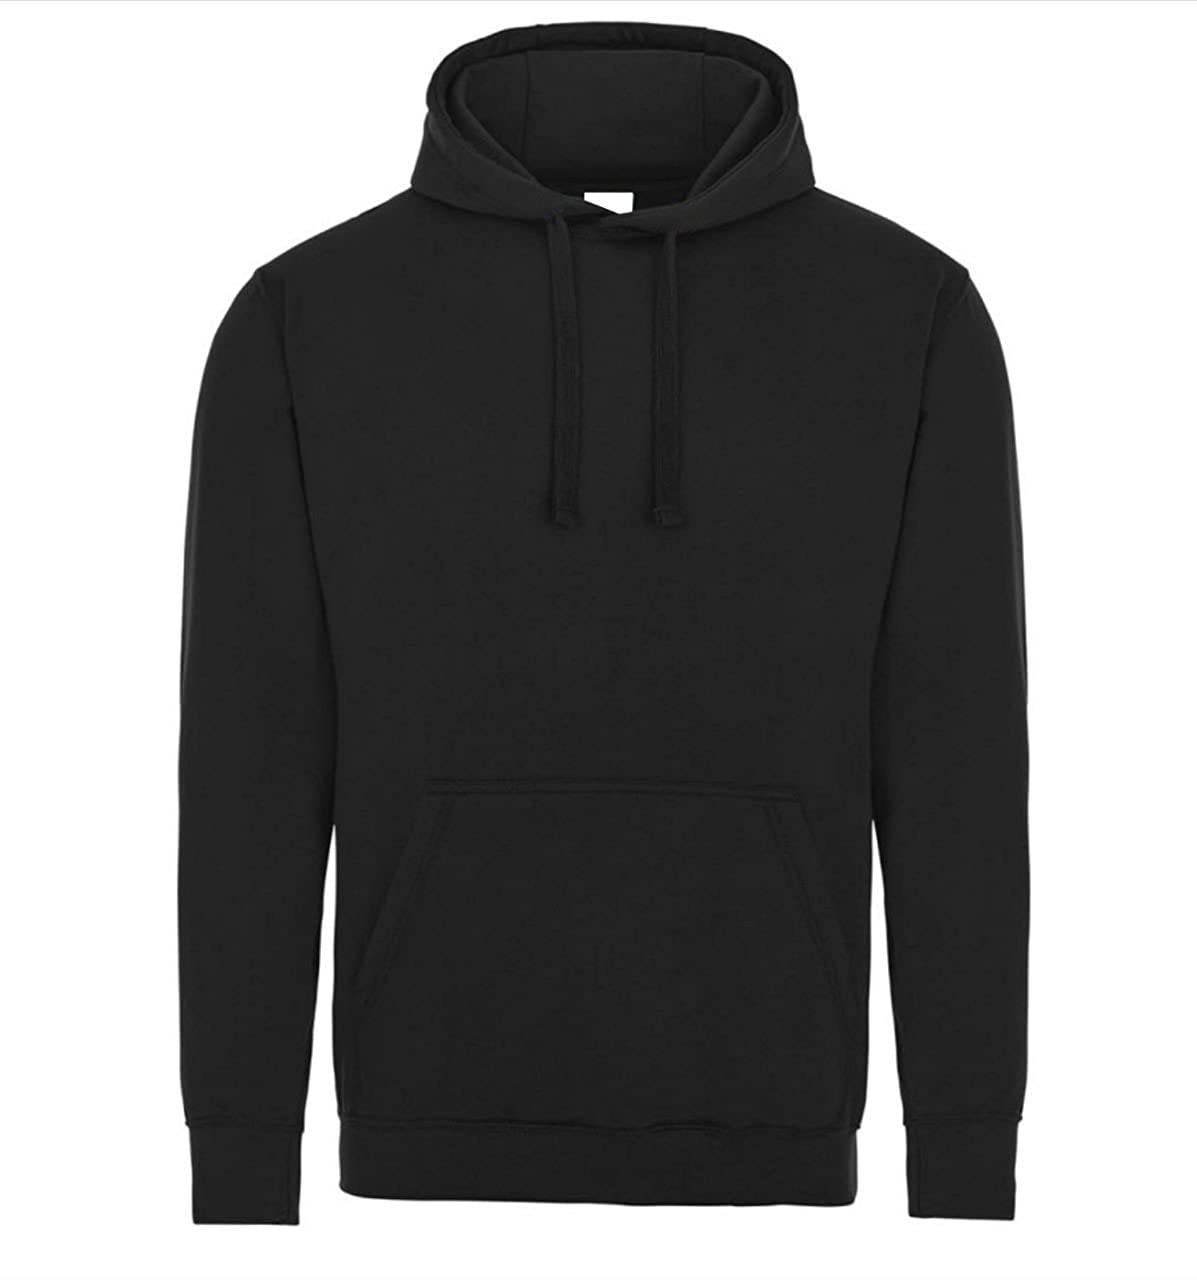 7b7cc17591f Famona Ltd Plain Black Pullover Unisex Hoodie Hooded Top Hoodie for Mens  and Womens Hooded Sweatshirt Available in XS to XXL